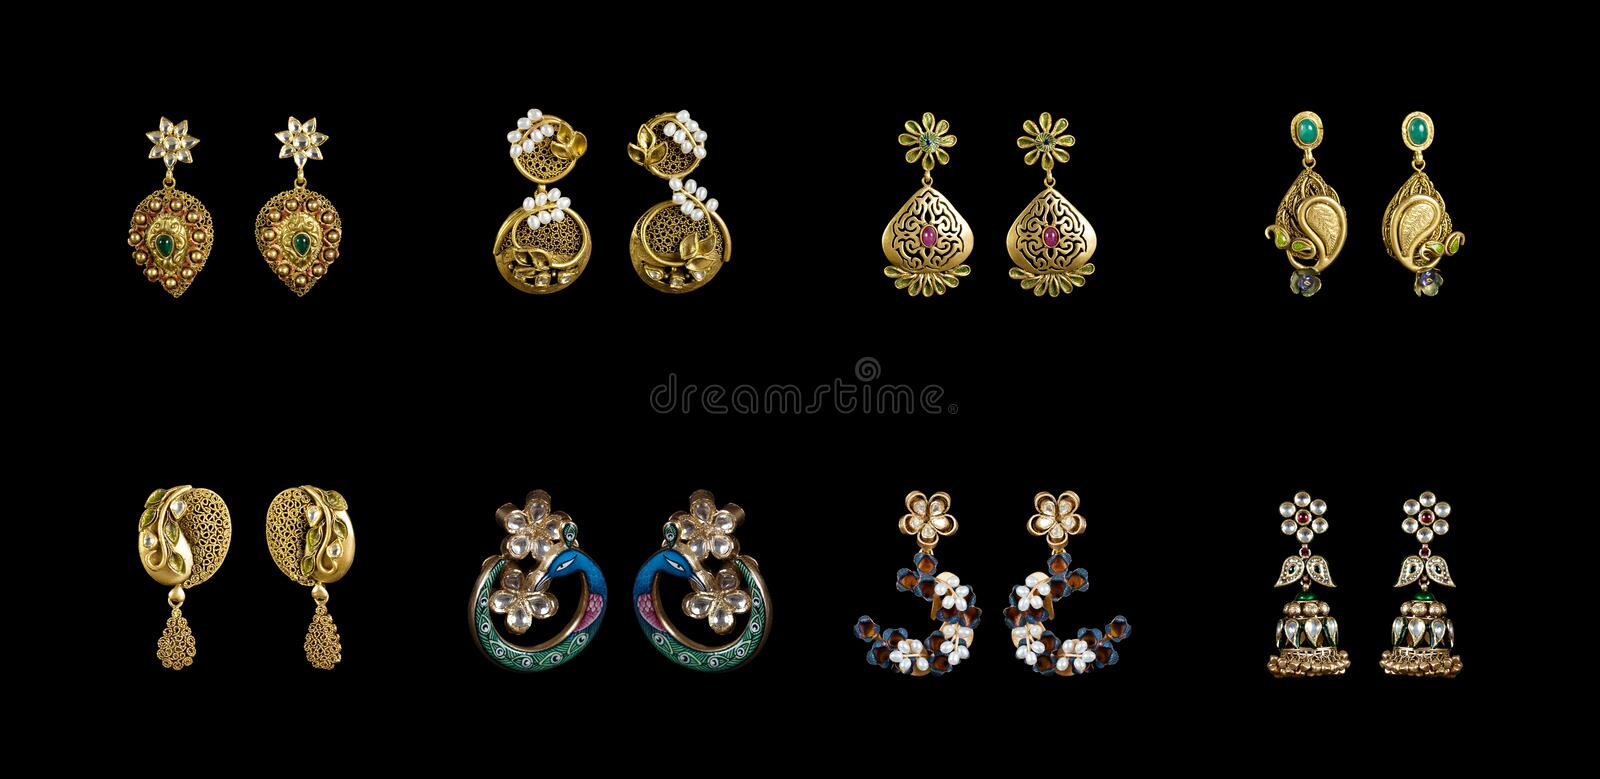 Pairs of earrings royalty free stock photos